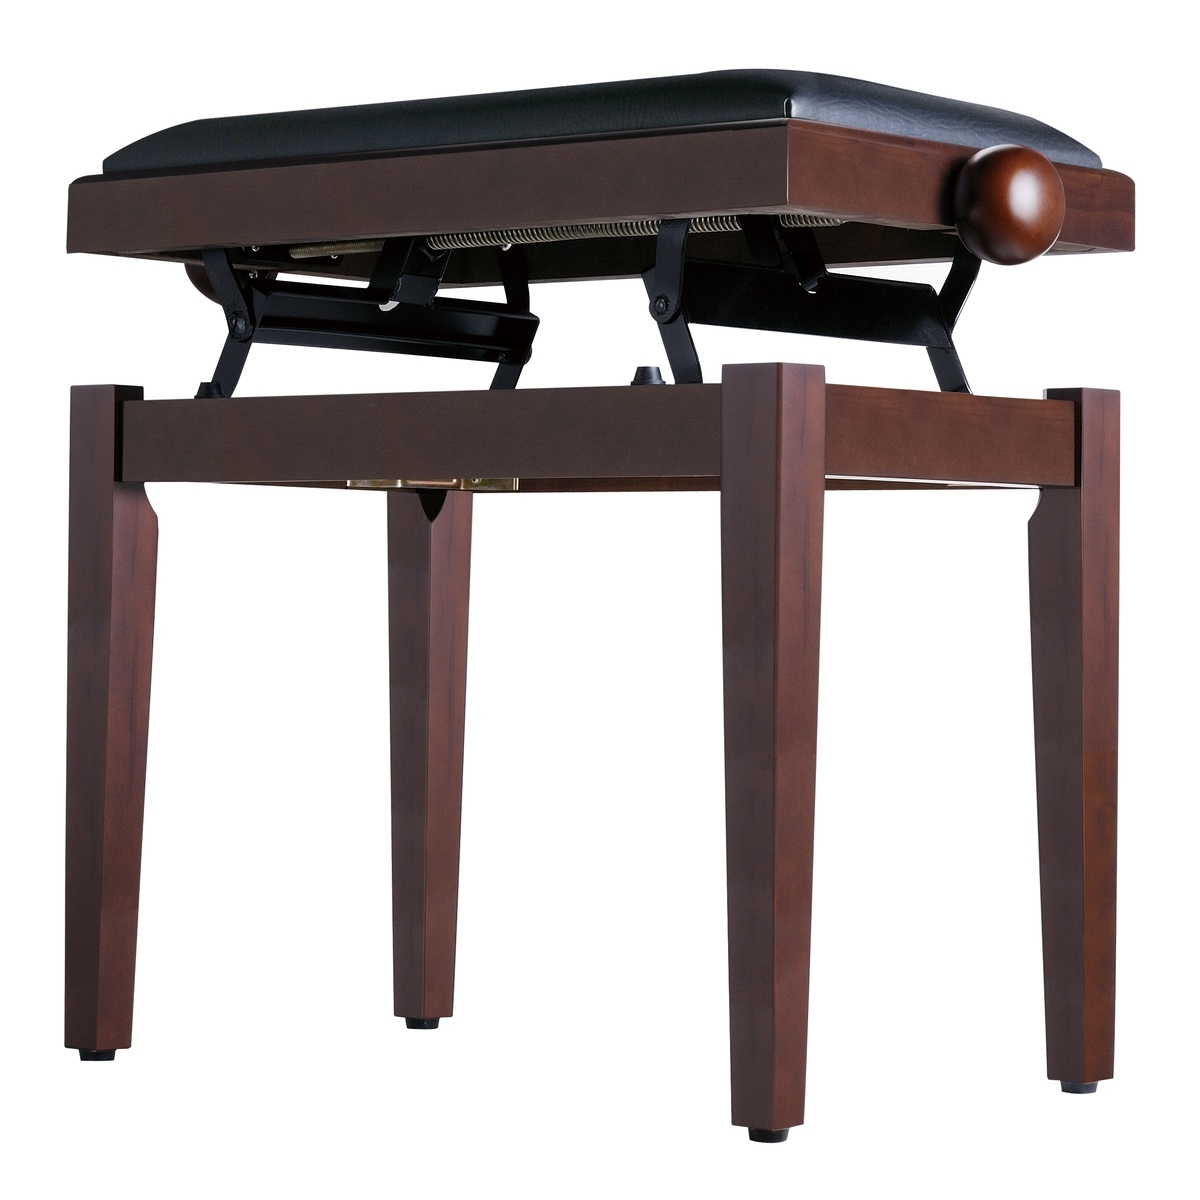 Soundsation SBH-100P-SRW Rise and fall Rosewood piano bench